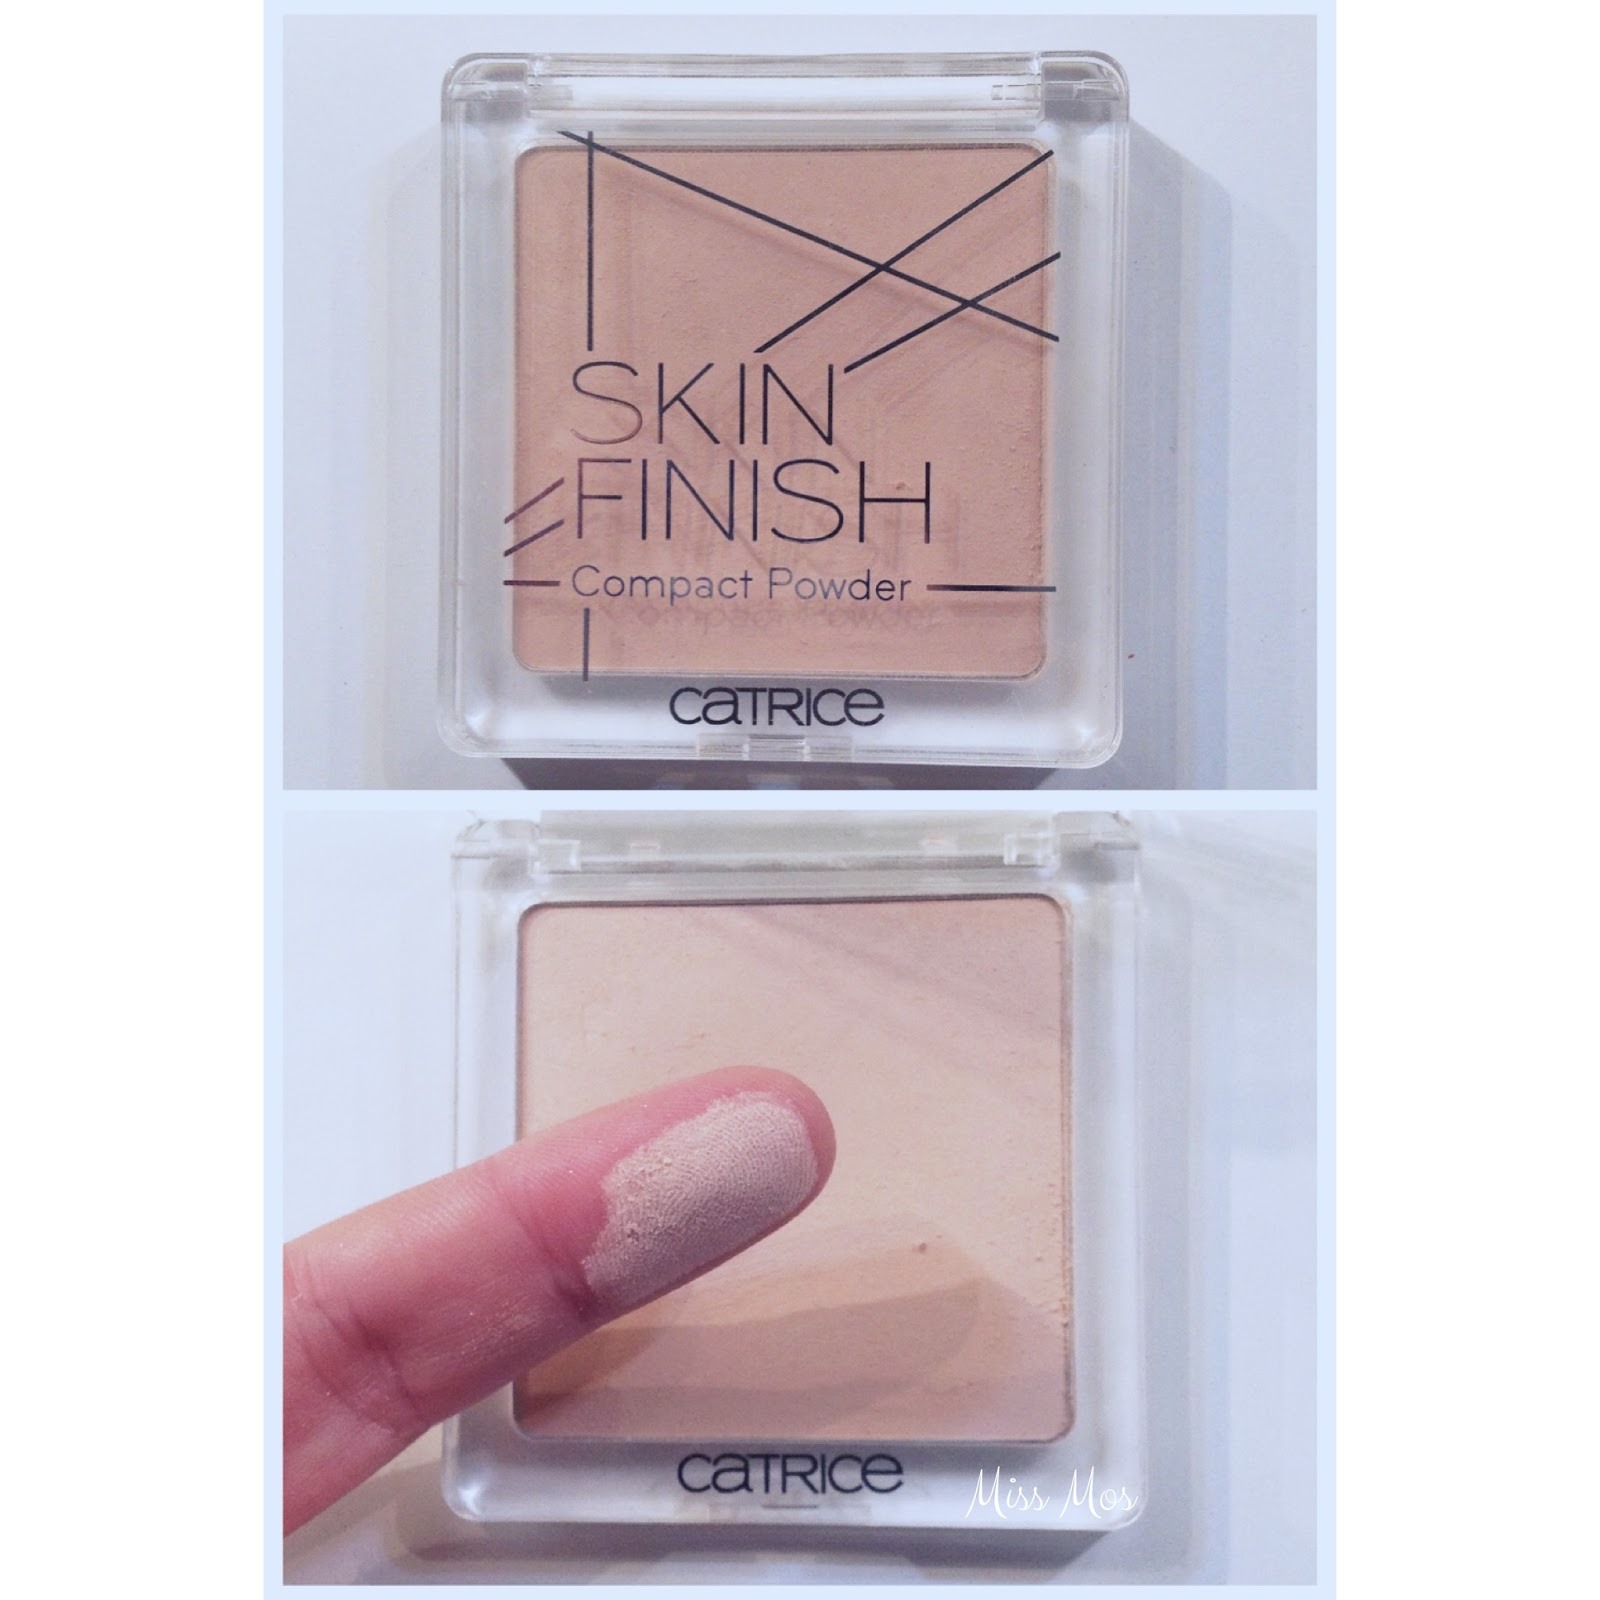 Skin Finish de Catrice